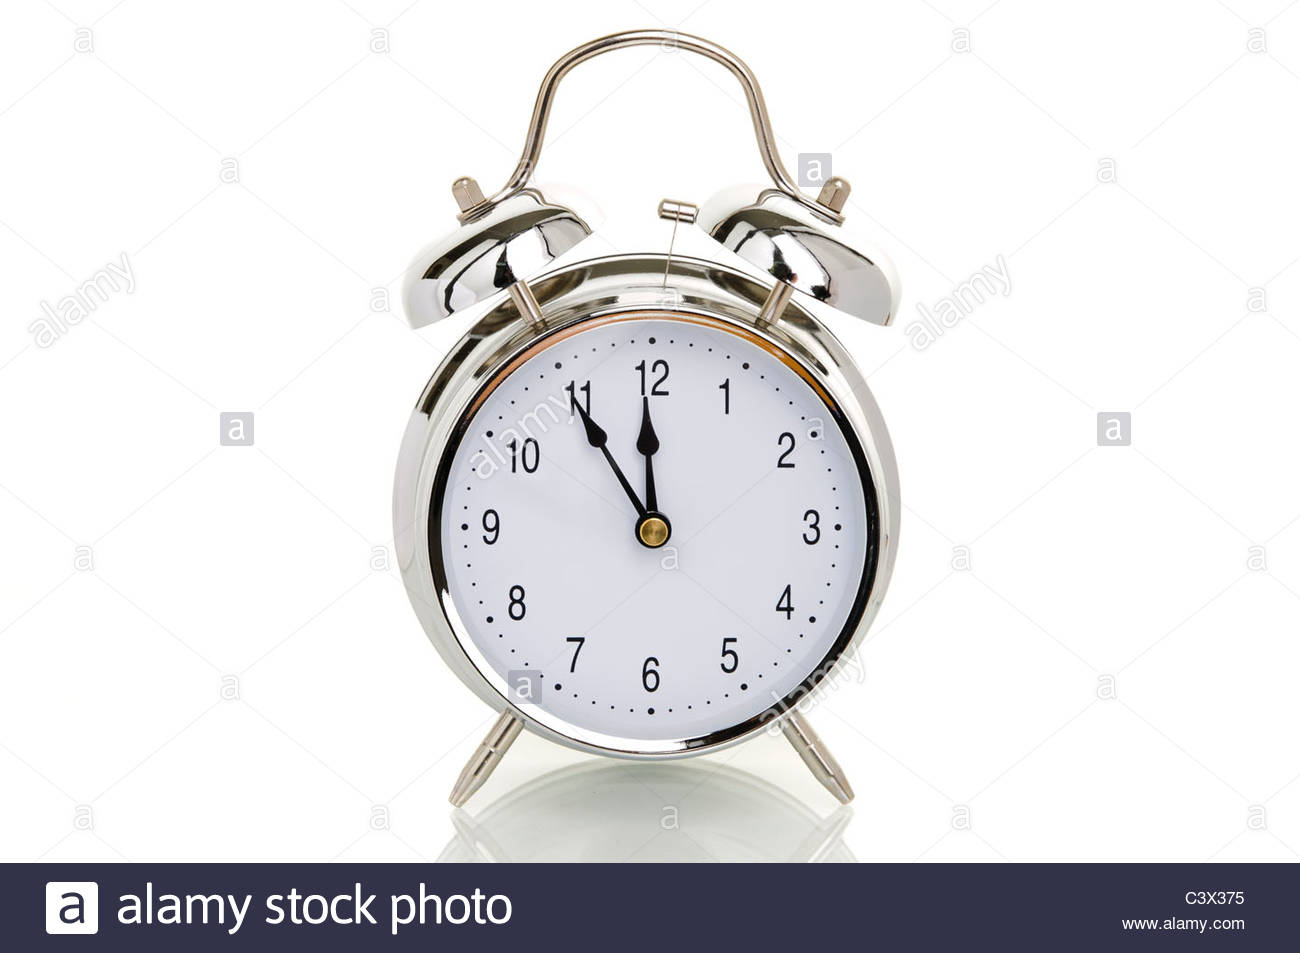 alarm clock time set to five minutes to twelve symbolic image